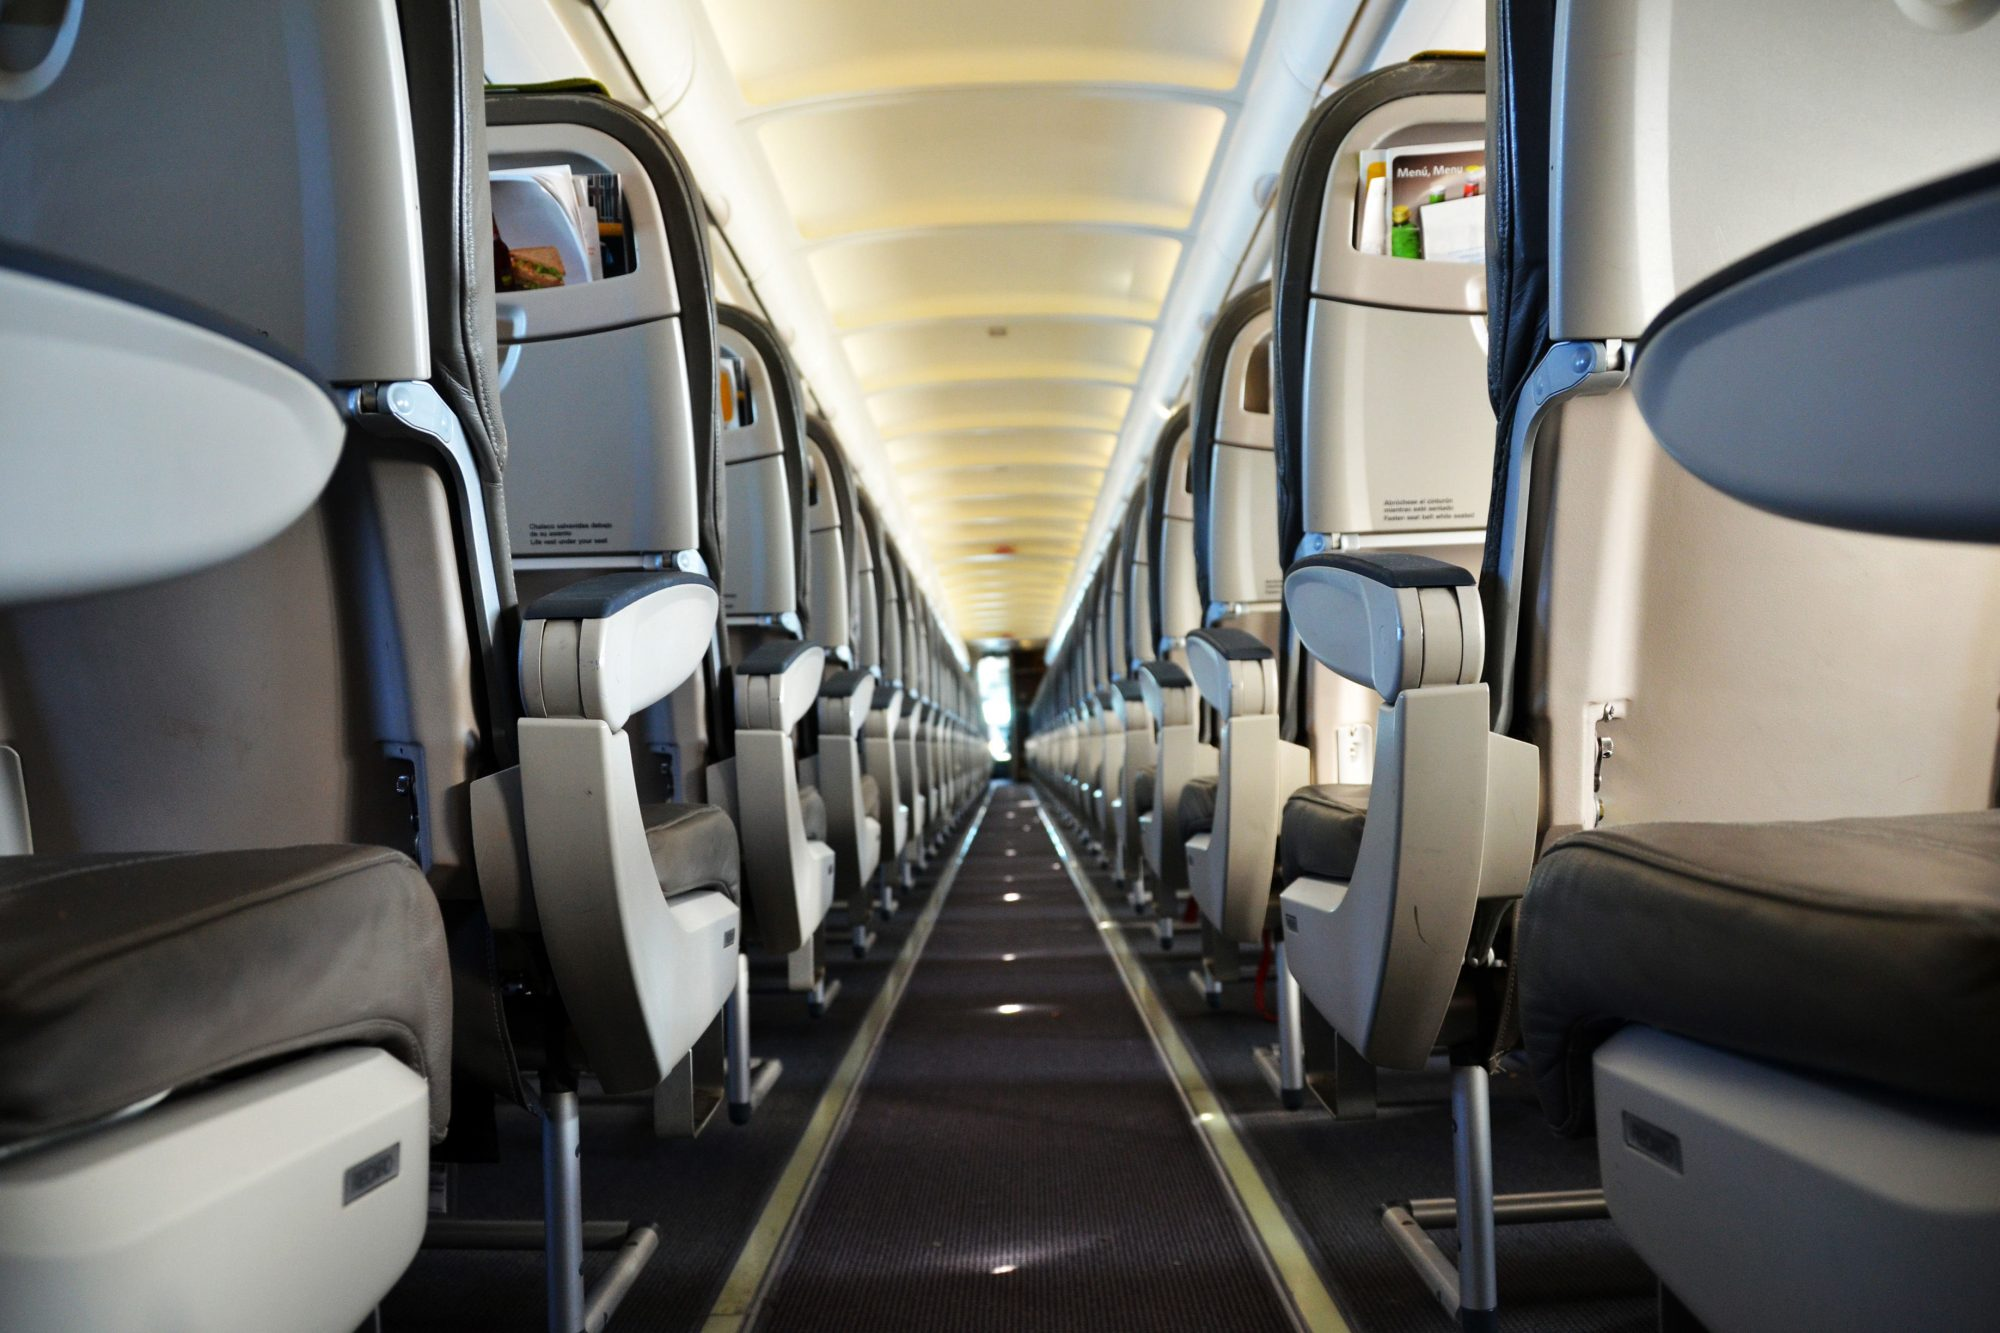 These Are the Three Best Seats on an Airplane